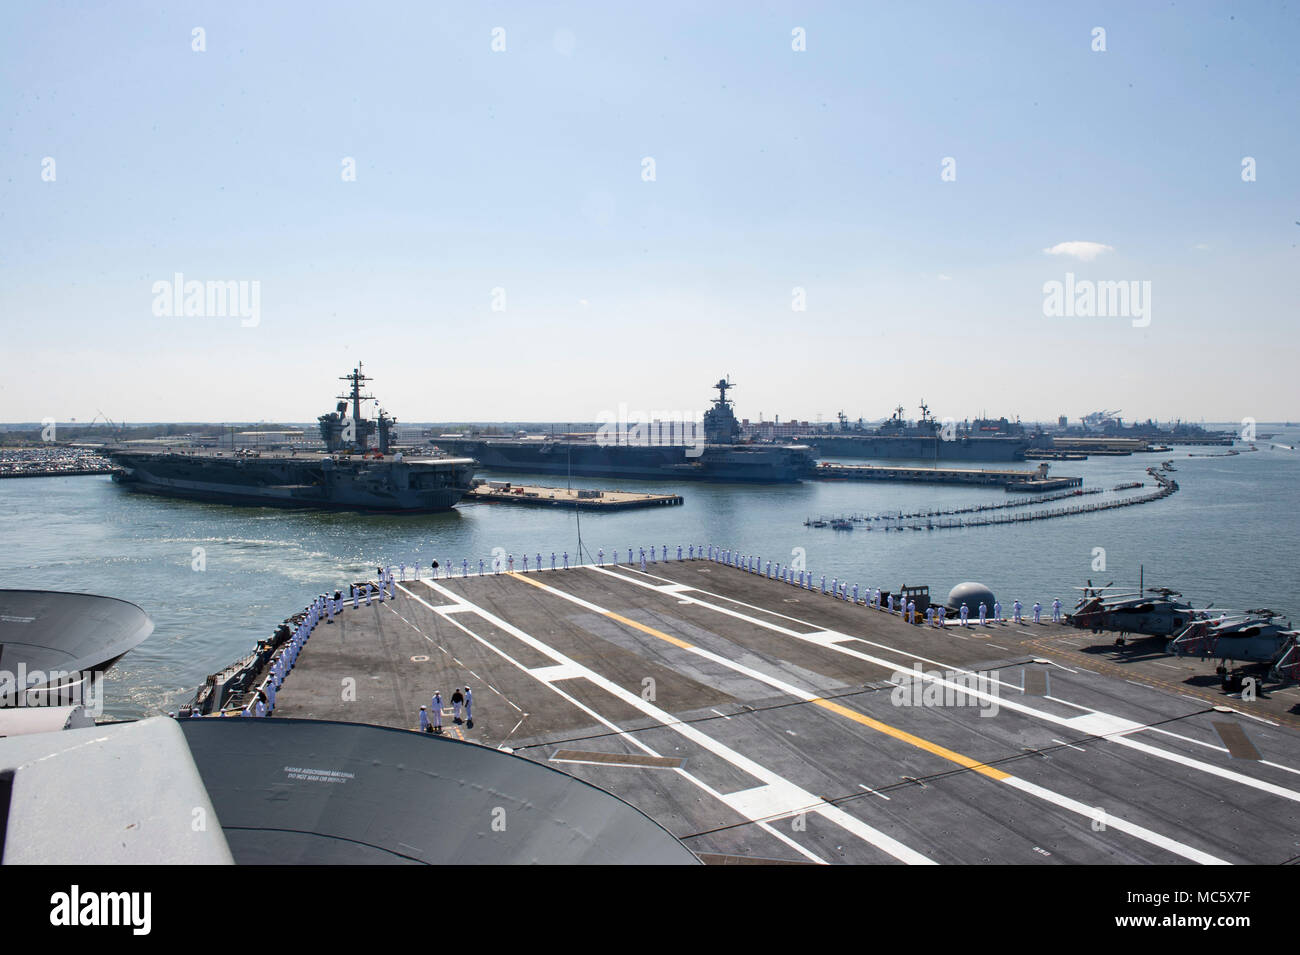 180411-N-UJ486-438  NORFOLK (April 11, 2018) Sailors man the rails aboard the aircraft carrier USS Harry S. Truman (CVN 75) during the ship's departure from homeport. Harry S. Truman is underway as the flagship for the Harry S. Truman Carrier Strike Group which includes; the guided-missile cruiser USS Normandy (CG 60), and the guided-missile destroyers USS Arleigh Burke (DDG 51), USS Bulkeley (DDG 84), USS Farragut (DDG 99), USS Forrest Sherman (DDG 98), USS The Sullivans (DDG 68), USS Winston S. Churchill (DDG 81) for a scheduled deployment. (U.S. Navy photo by Mass Communication Specialist 3 Stock Photo